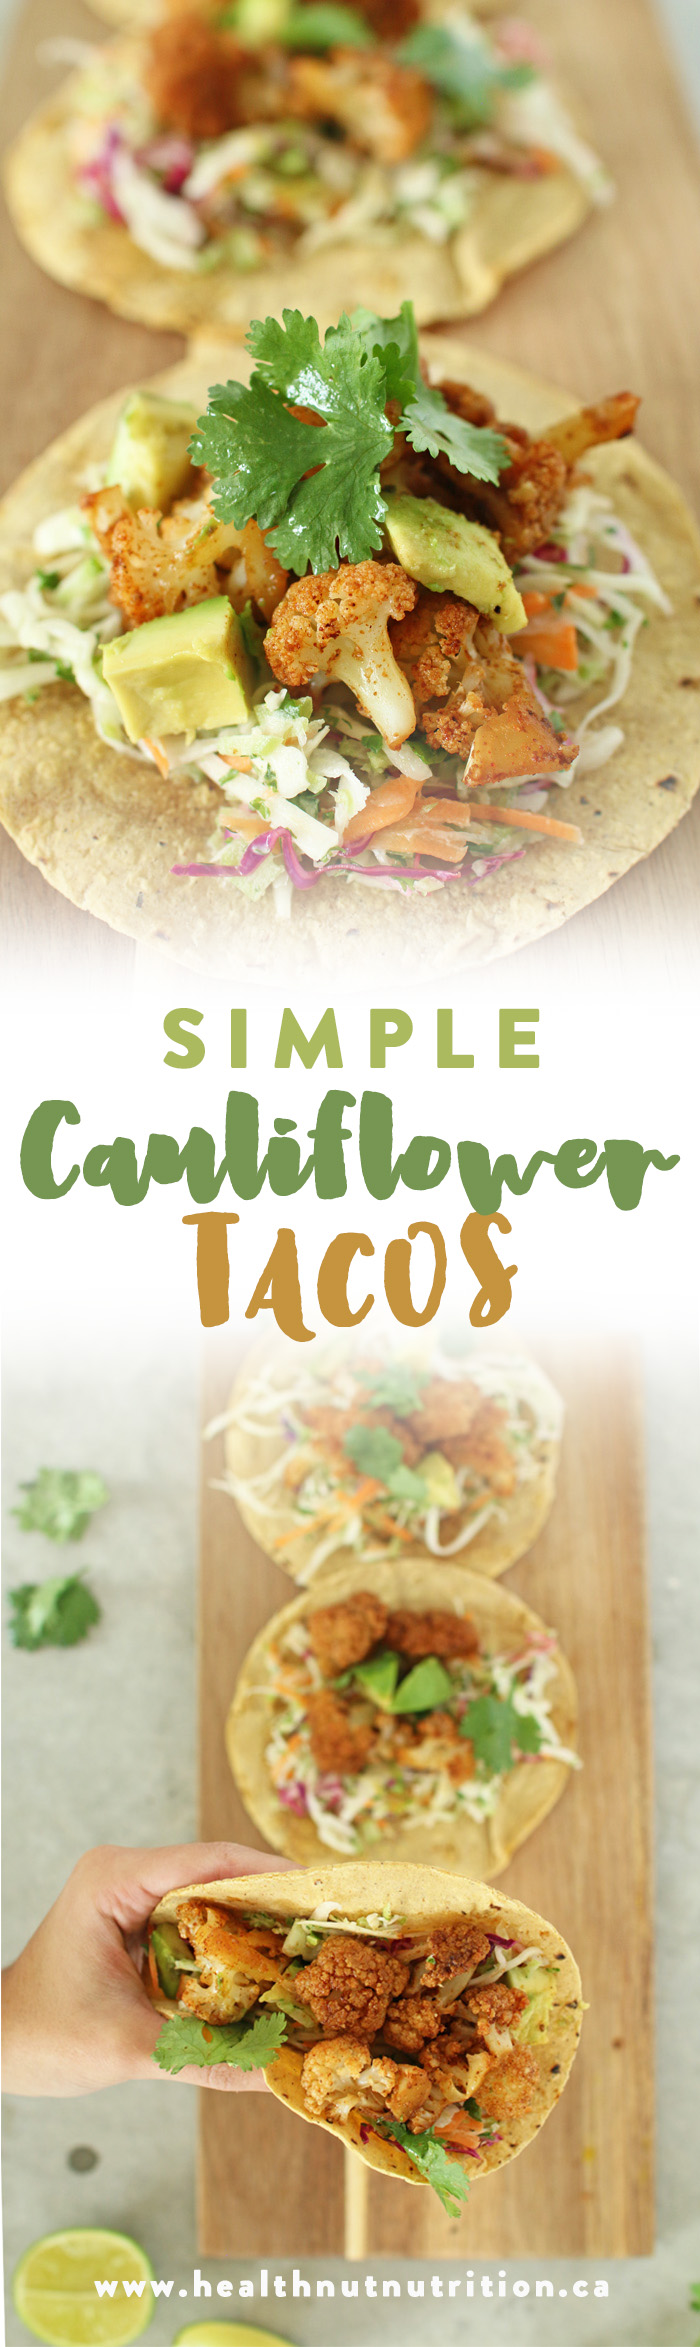 Simple cauliflower taco recipe! Click now to read more, or pin to save for later!